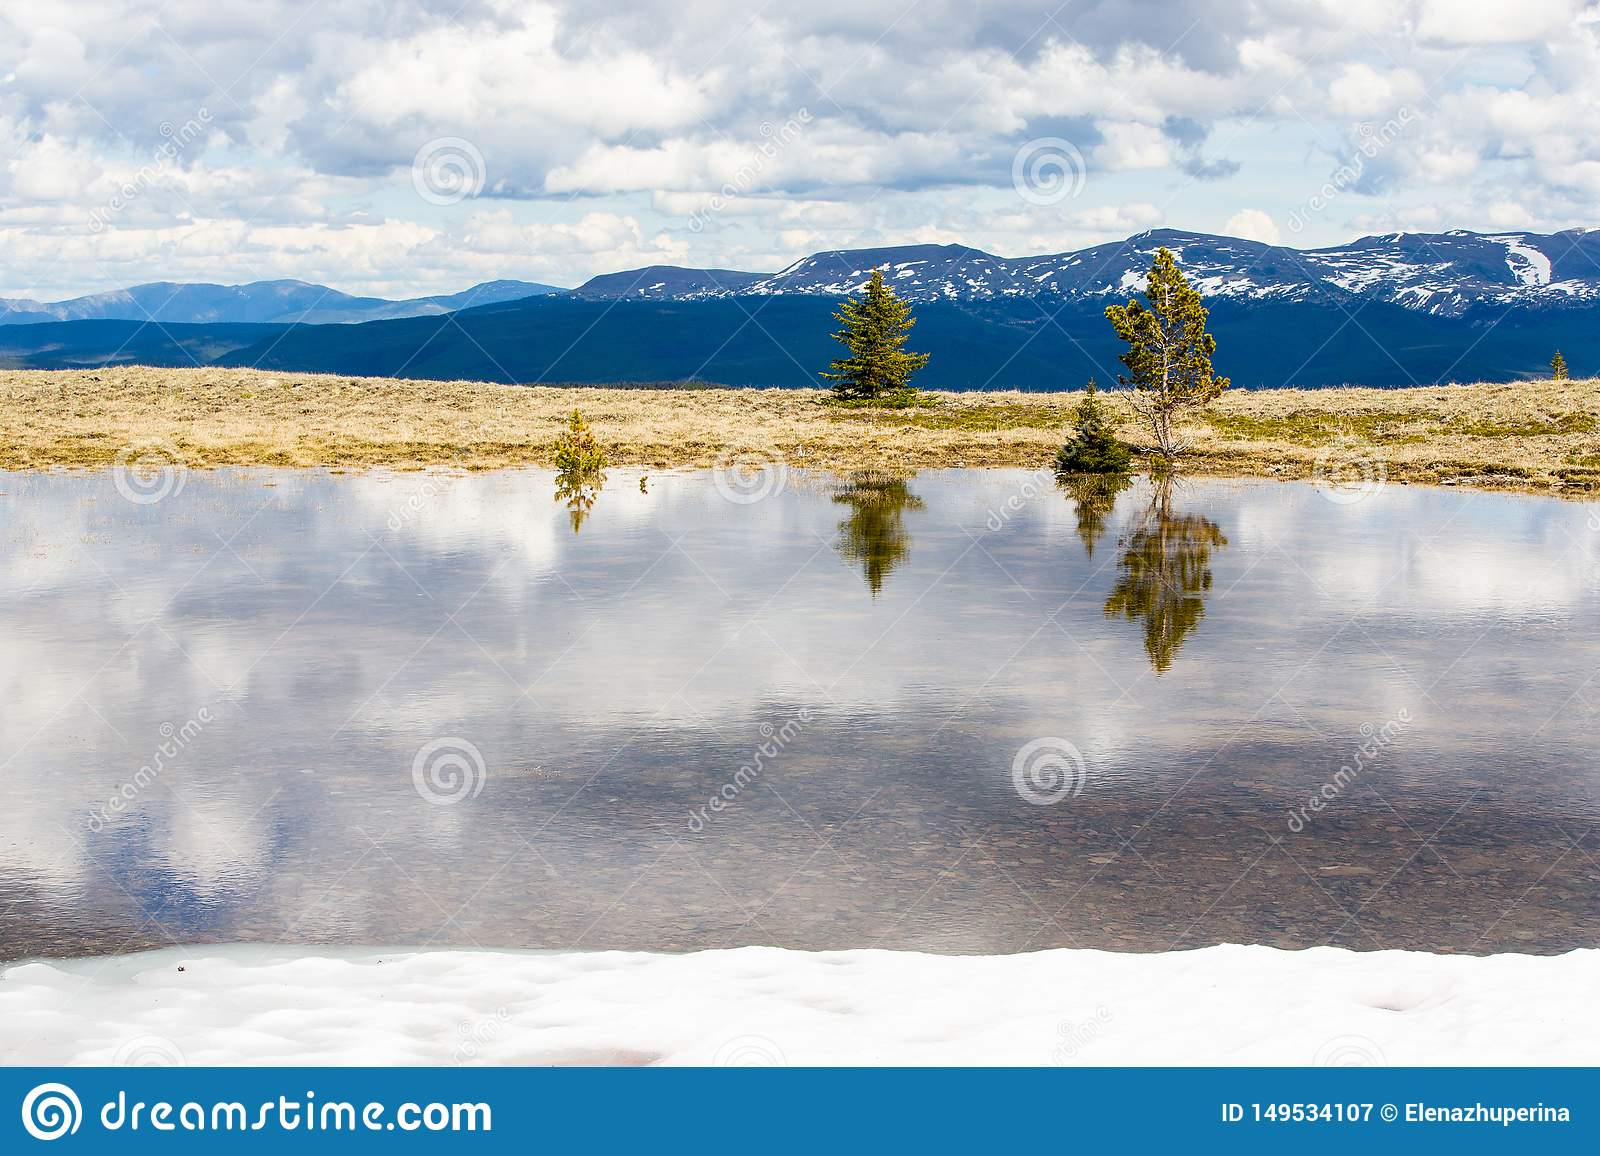 Trees are reflected in the melt water, against the snow-capped tops of the high mountains of British Columbia